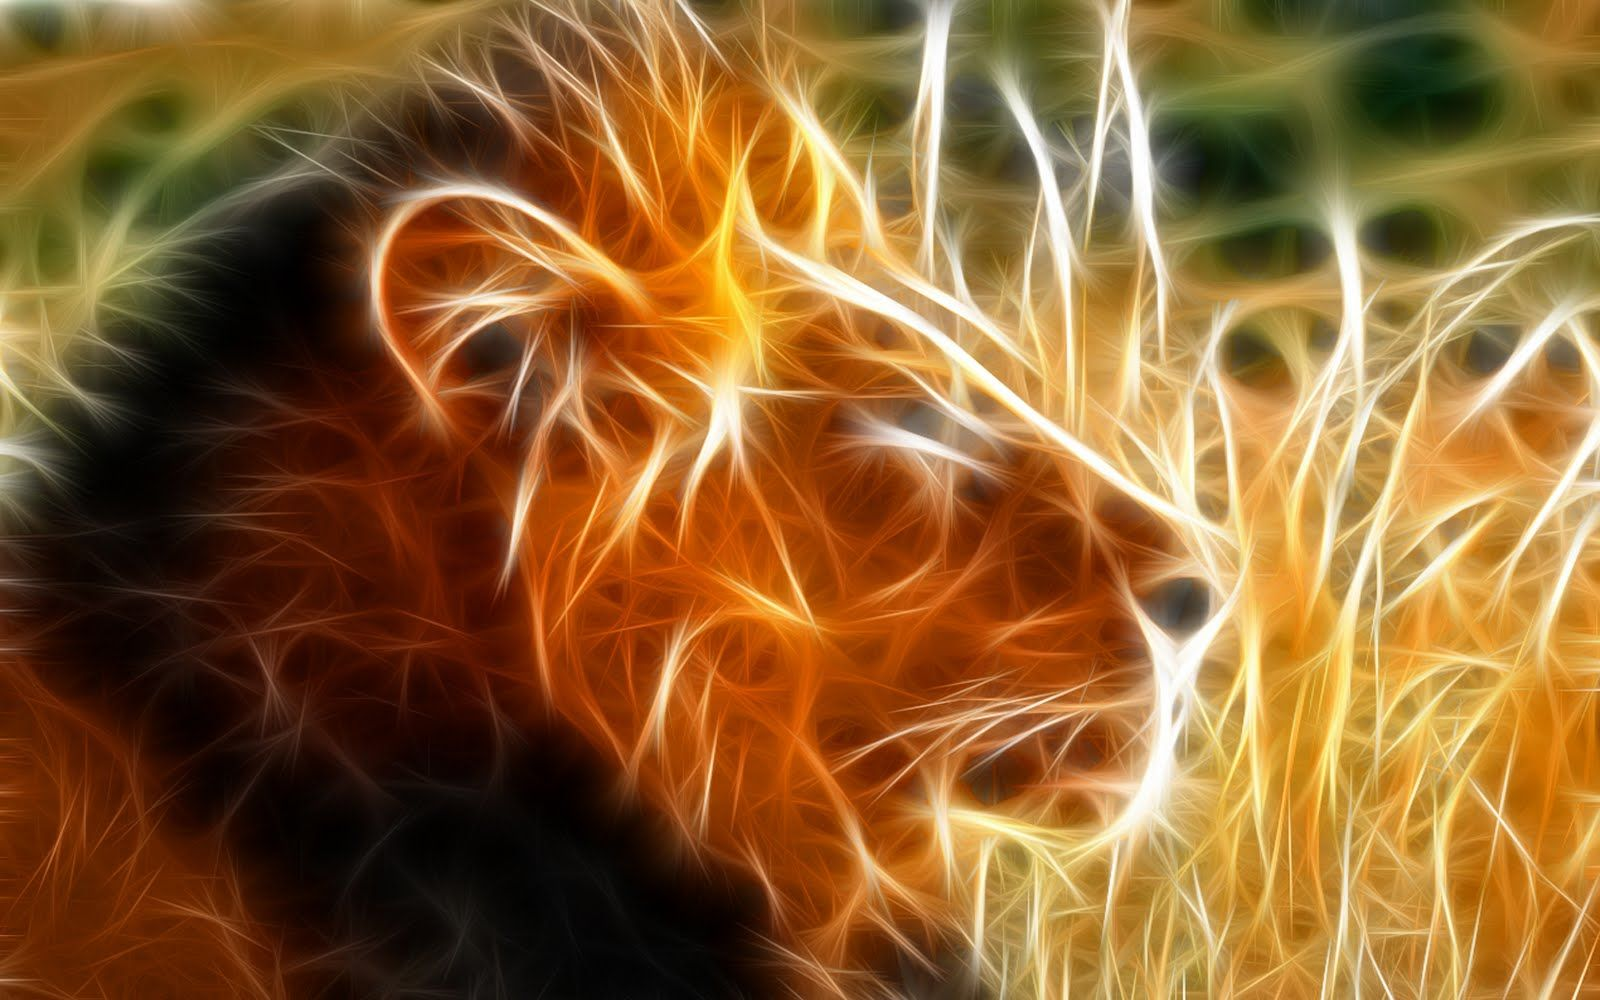 Astonishing Hd Wallpapers Wallpapers Box Abstract Lion Hd Wallpapers Download Free Architecture Designs Embacsunscenecom